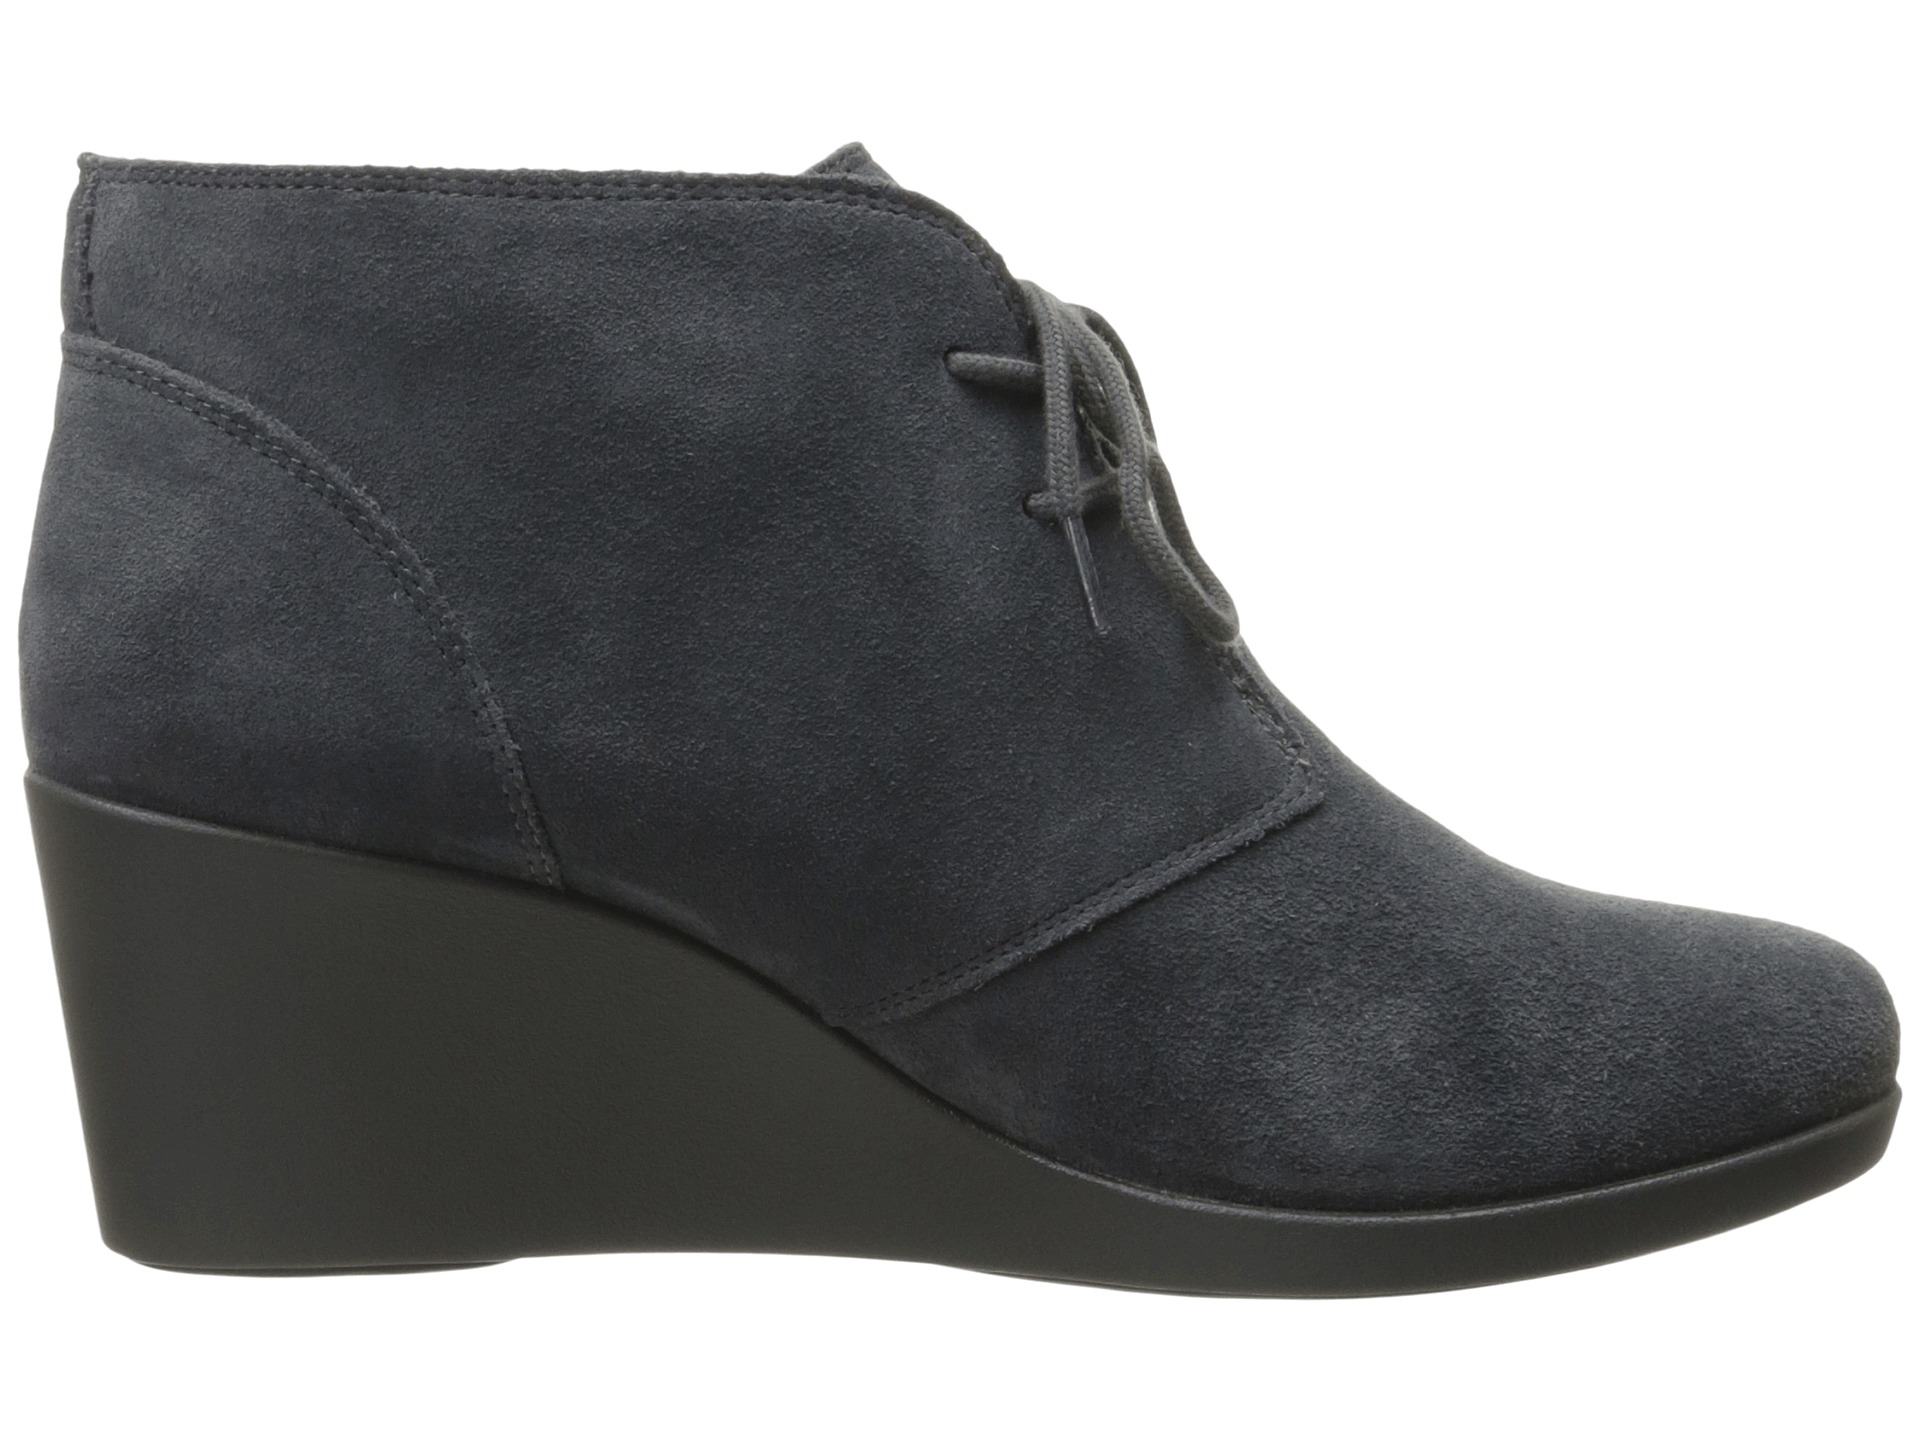 crocs leigh suede wedge shootie grey zappos free